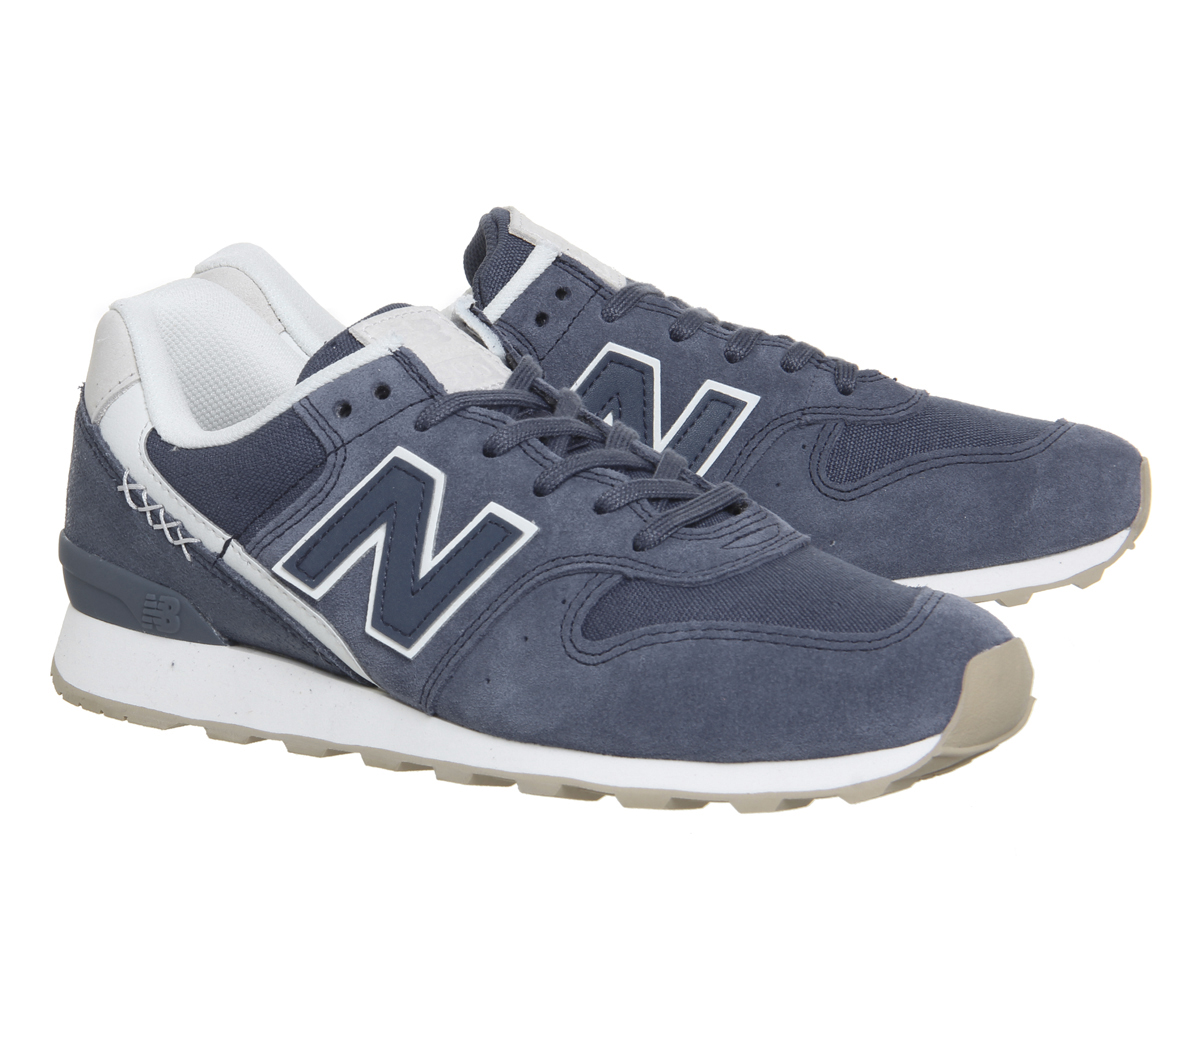 e7e46d758dbdb Womens New Balance 996 Trainers Vintage Indigo Trainers Shoes | eBay